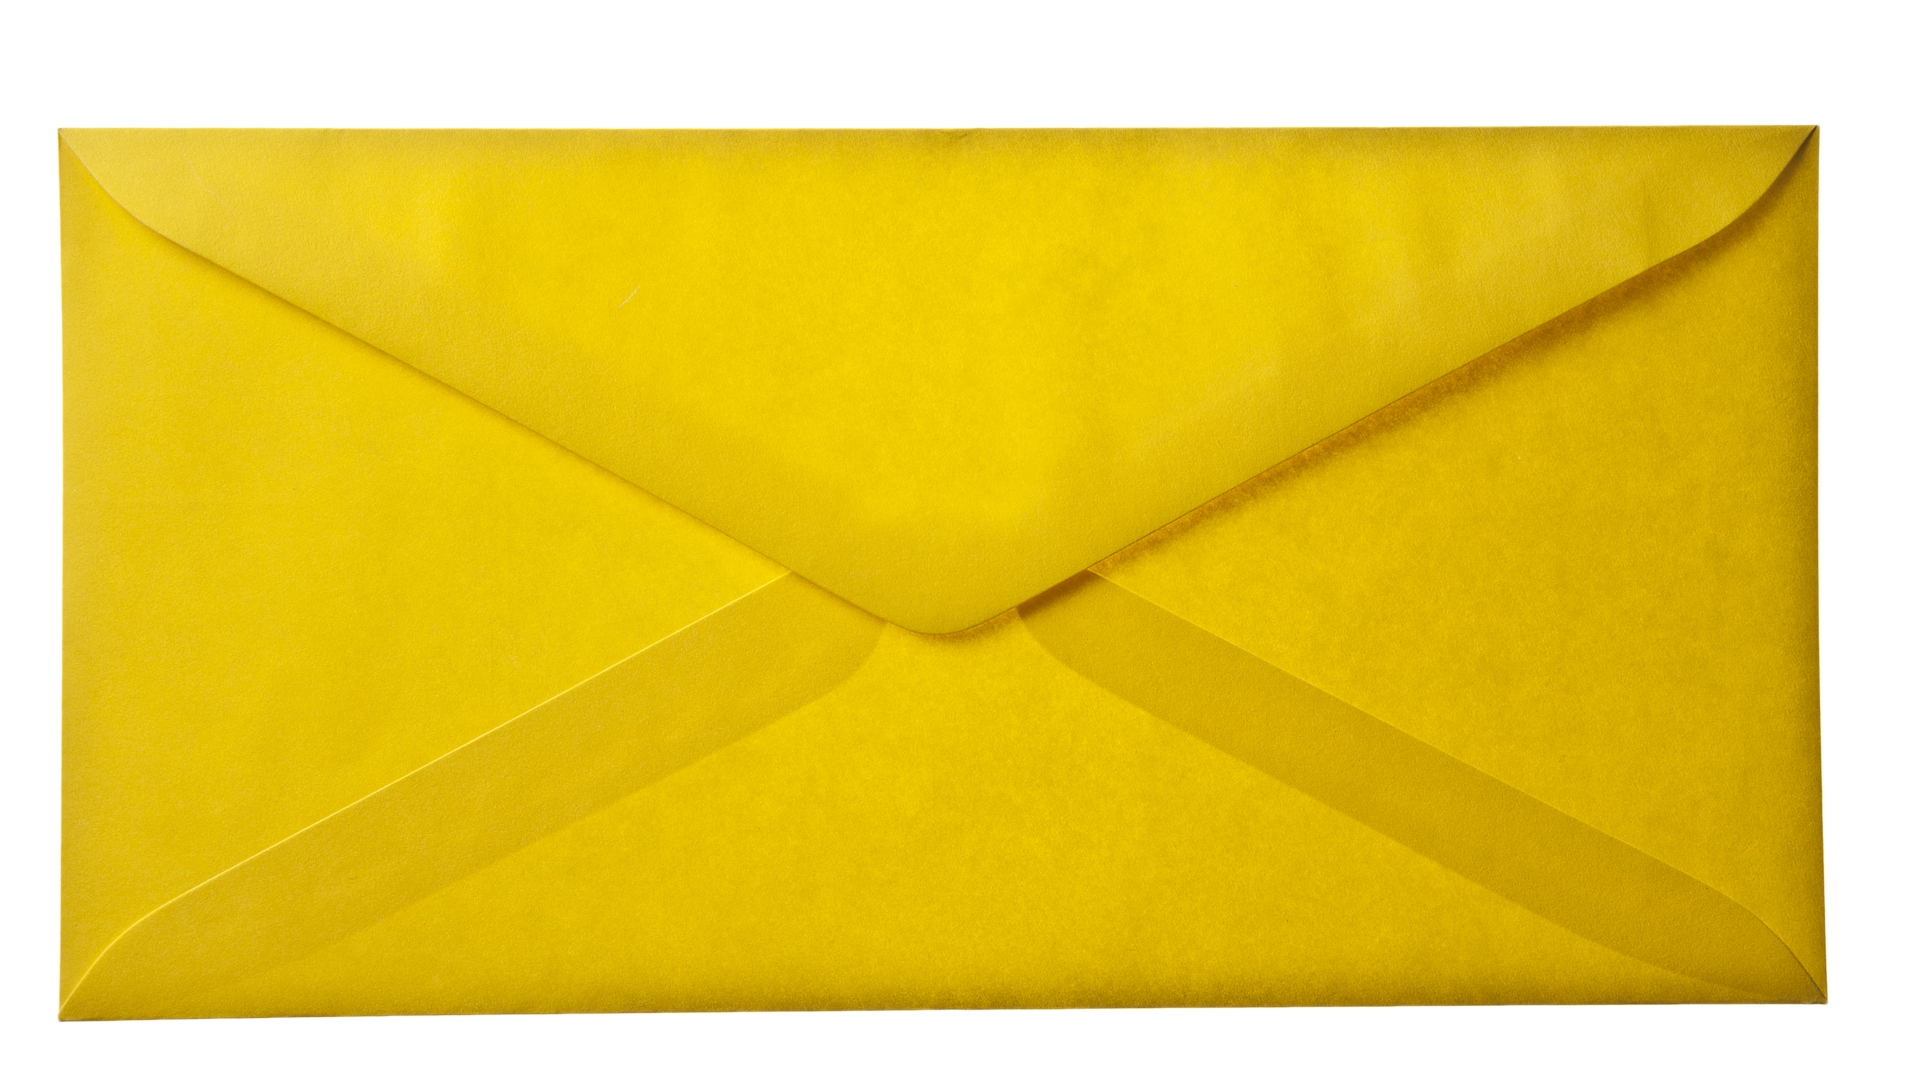 Envelope clipart envelop. Png hd transparent images